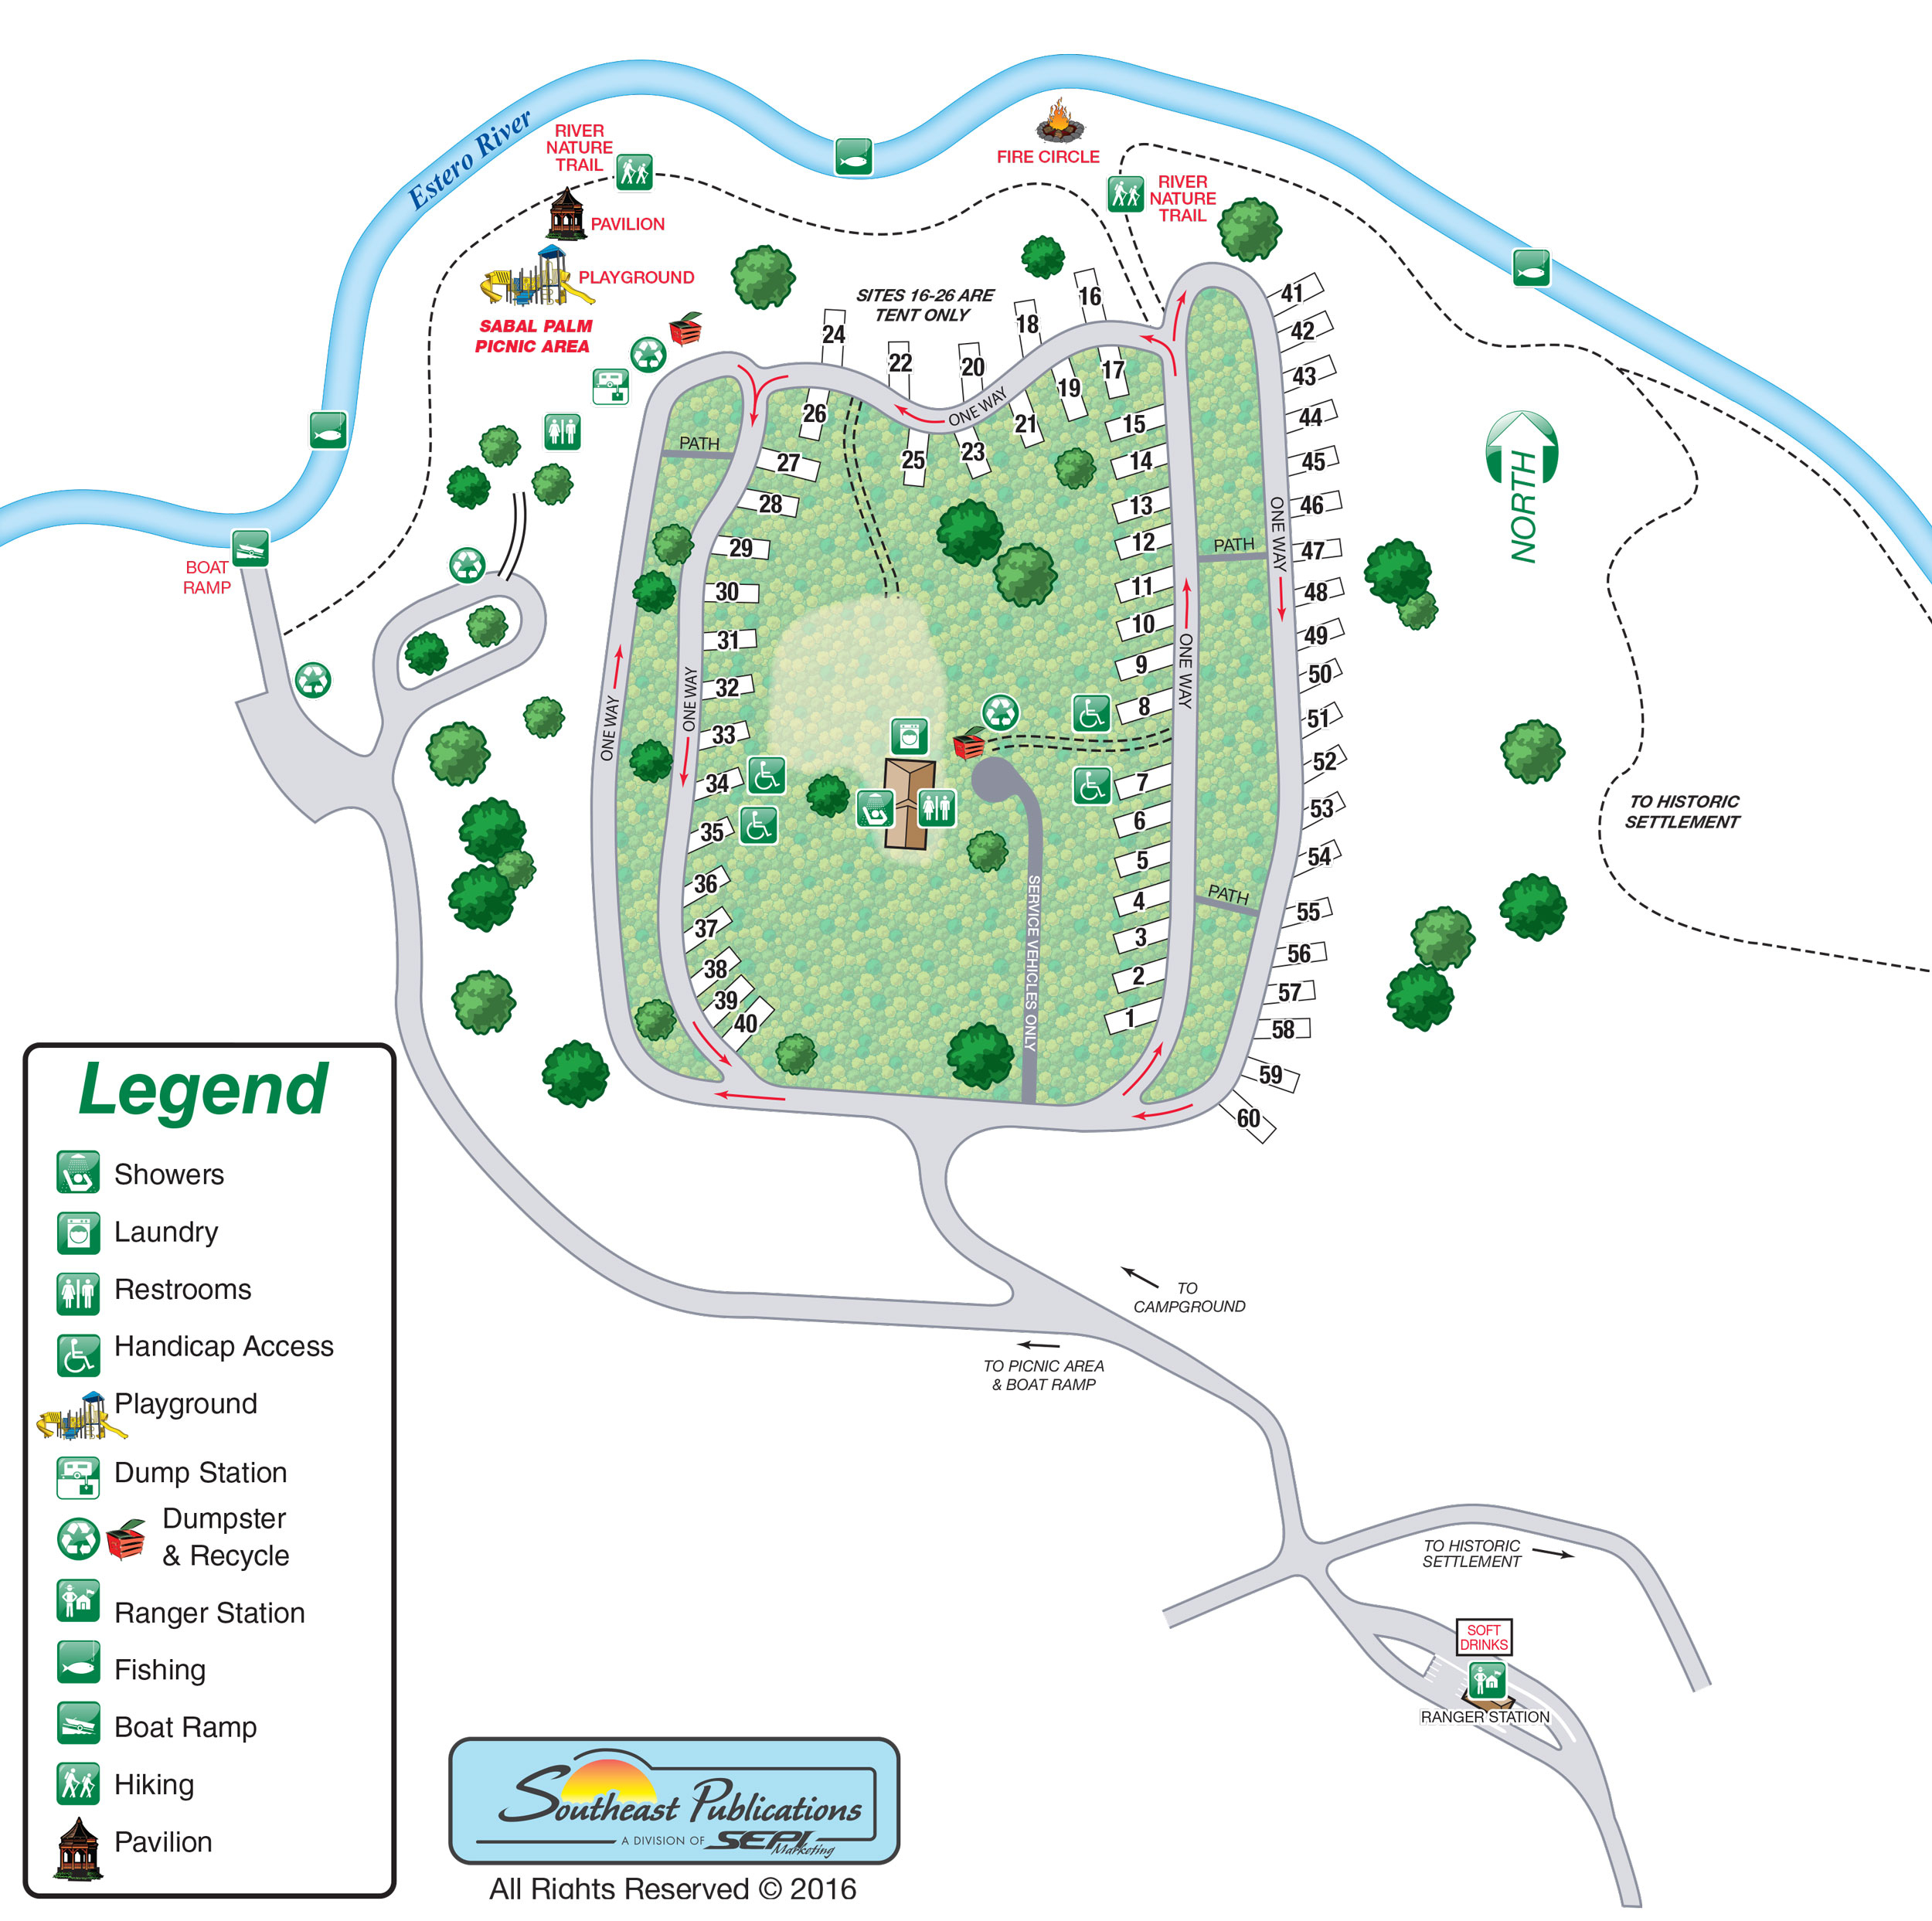 Florida State Parks Rv Camping - Know Your Campground - Florida State Campgrounds Map